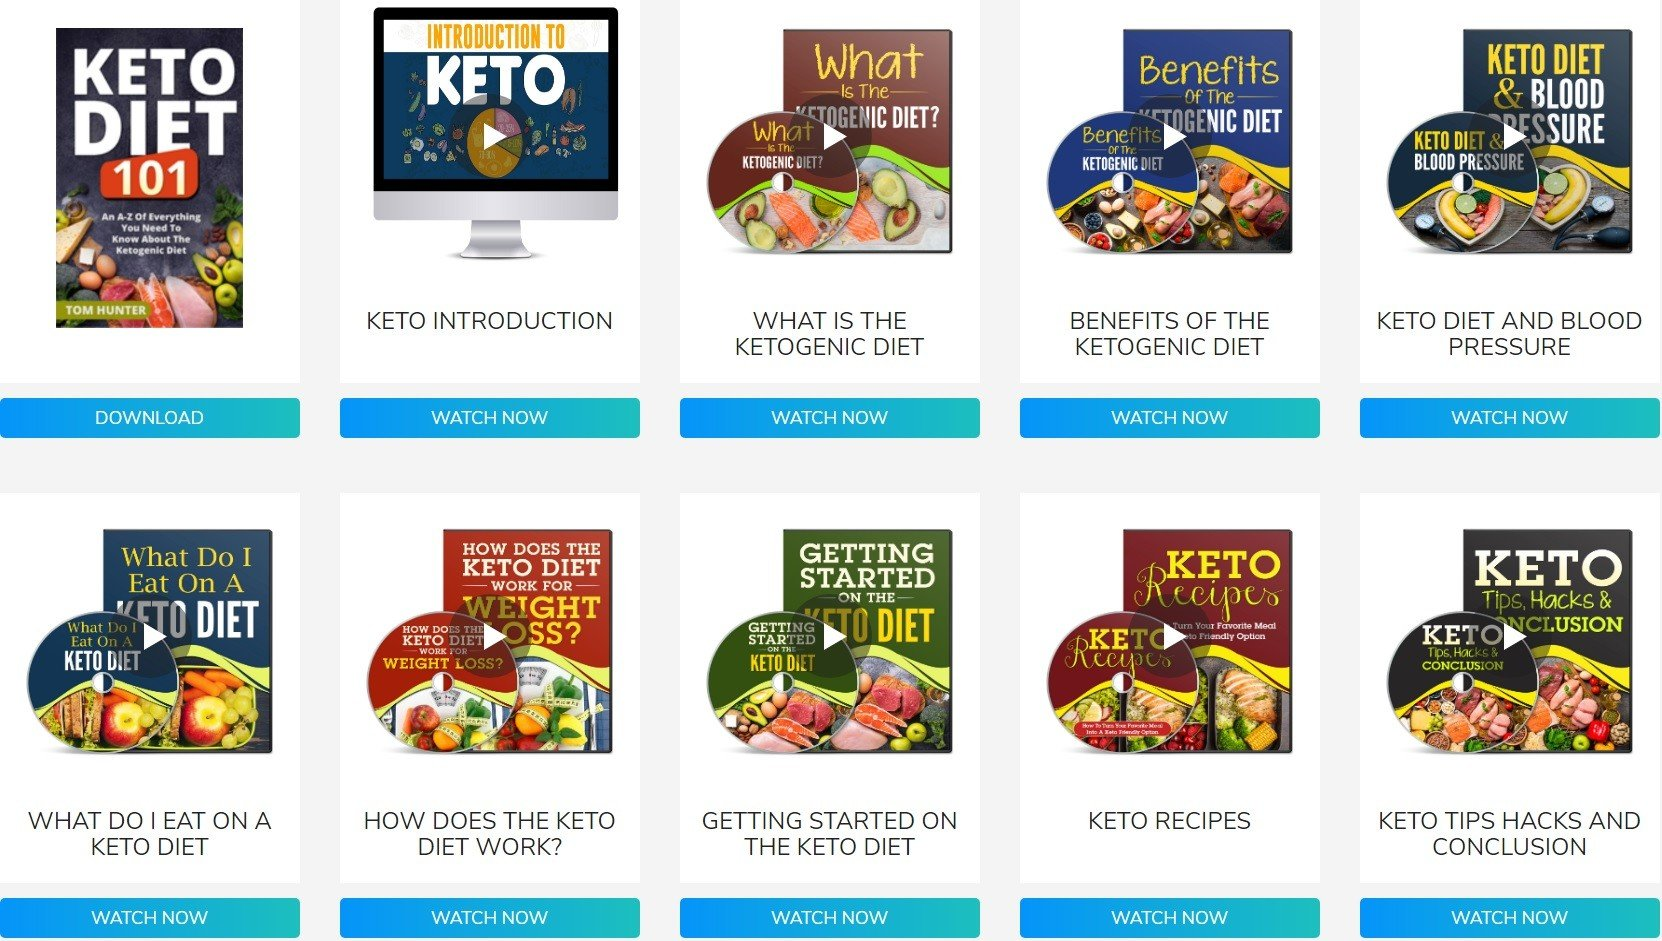 Company Website Custom Keto Diet Plan